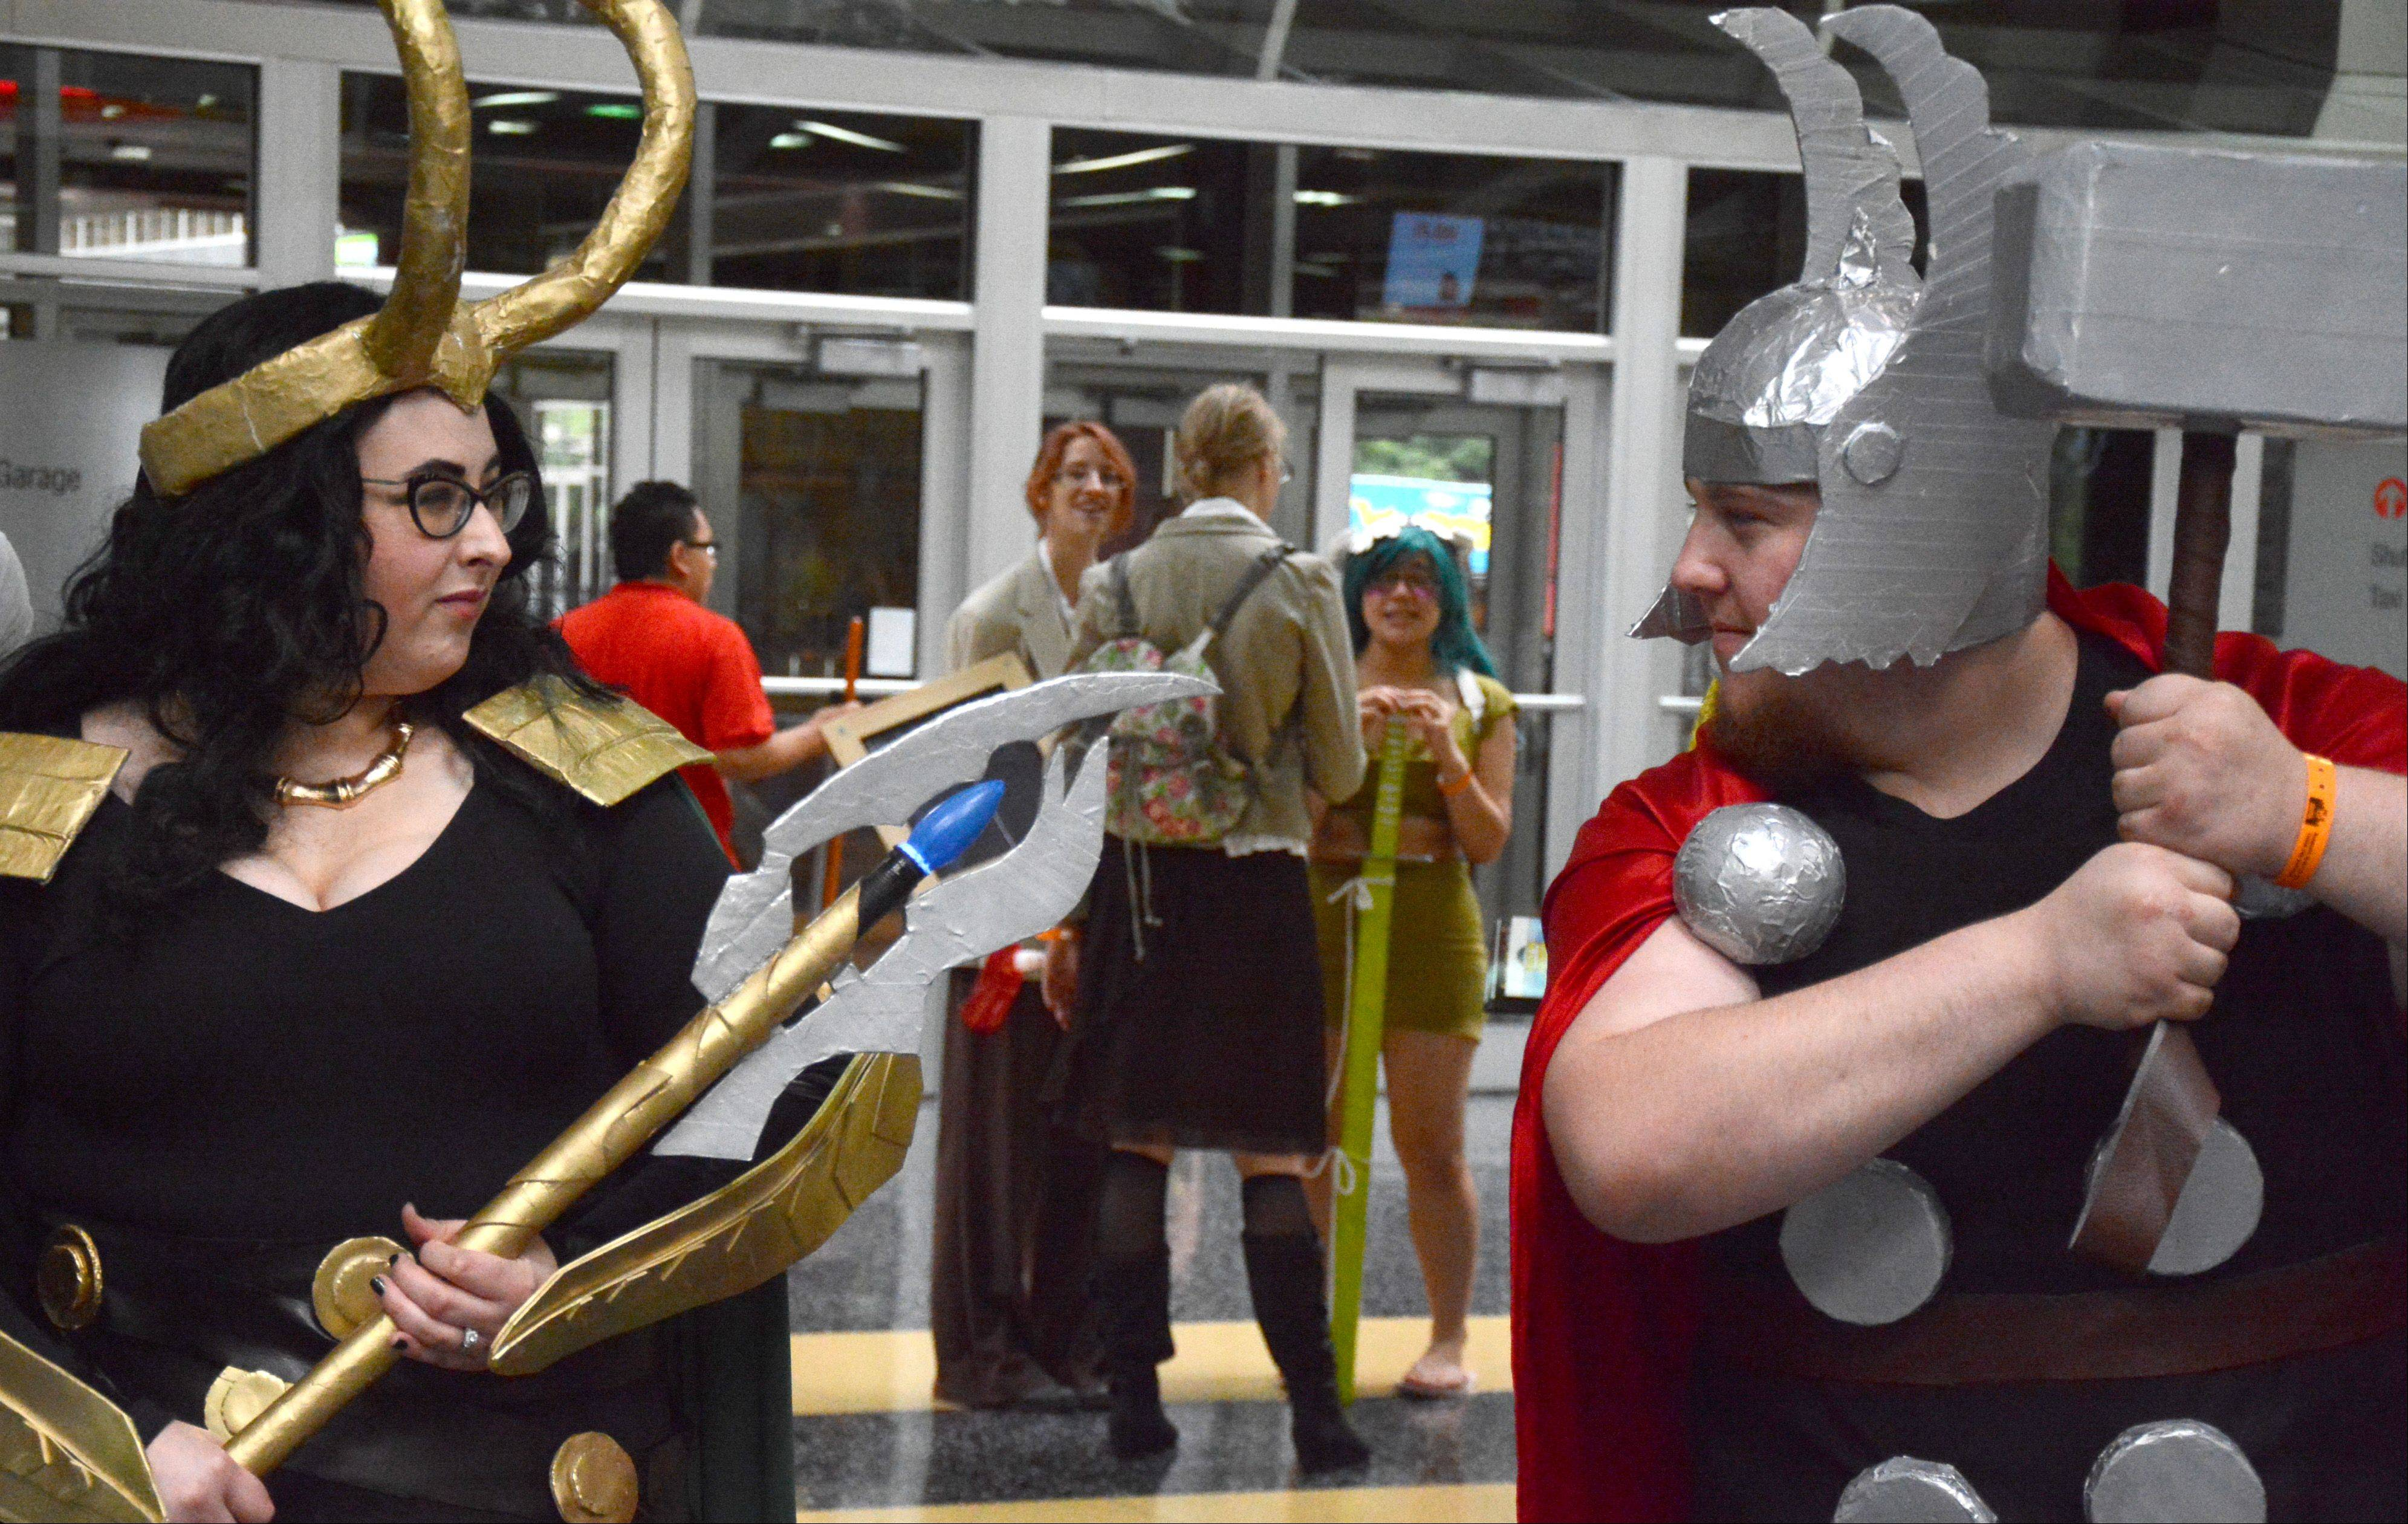 Images from Comic Con Friday, August 9.